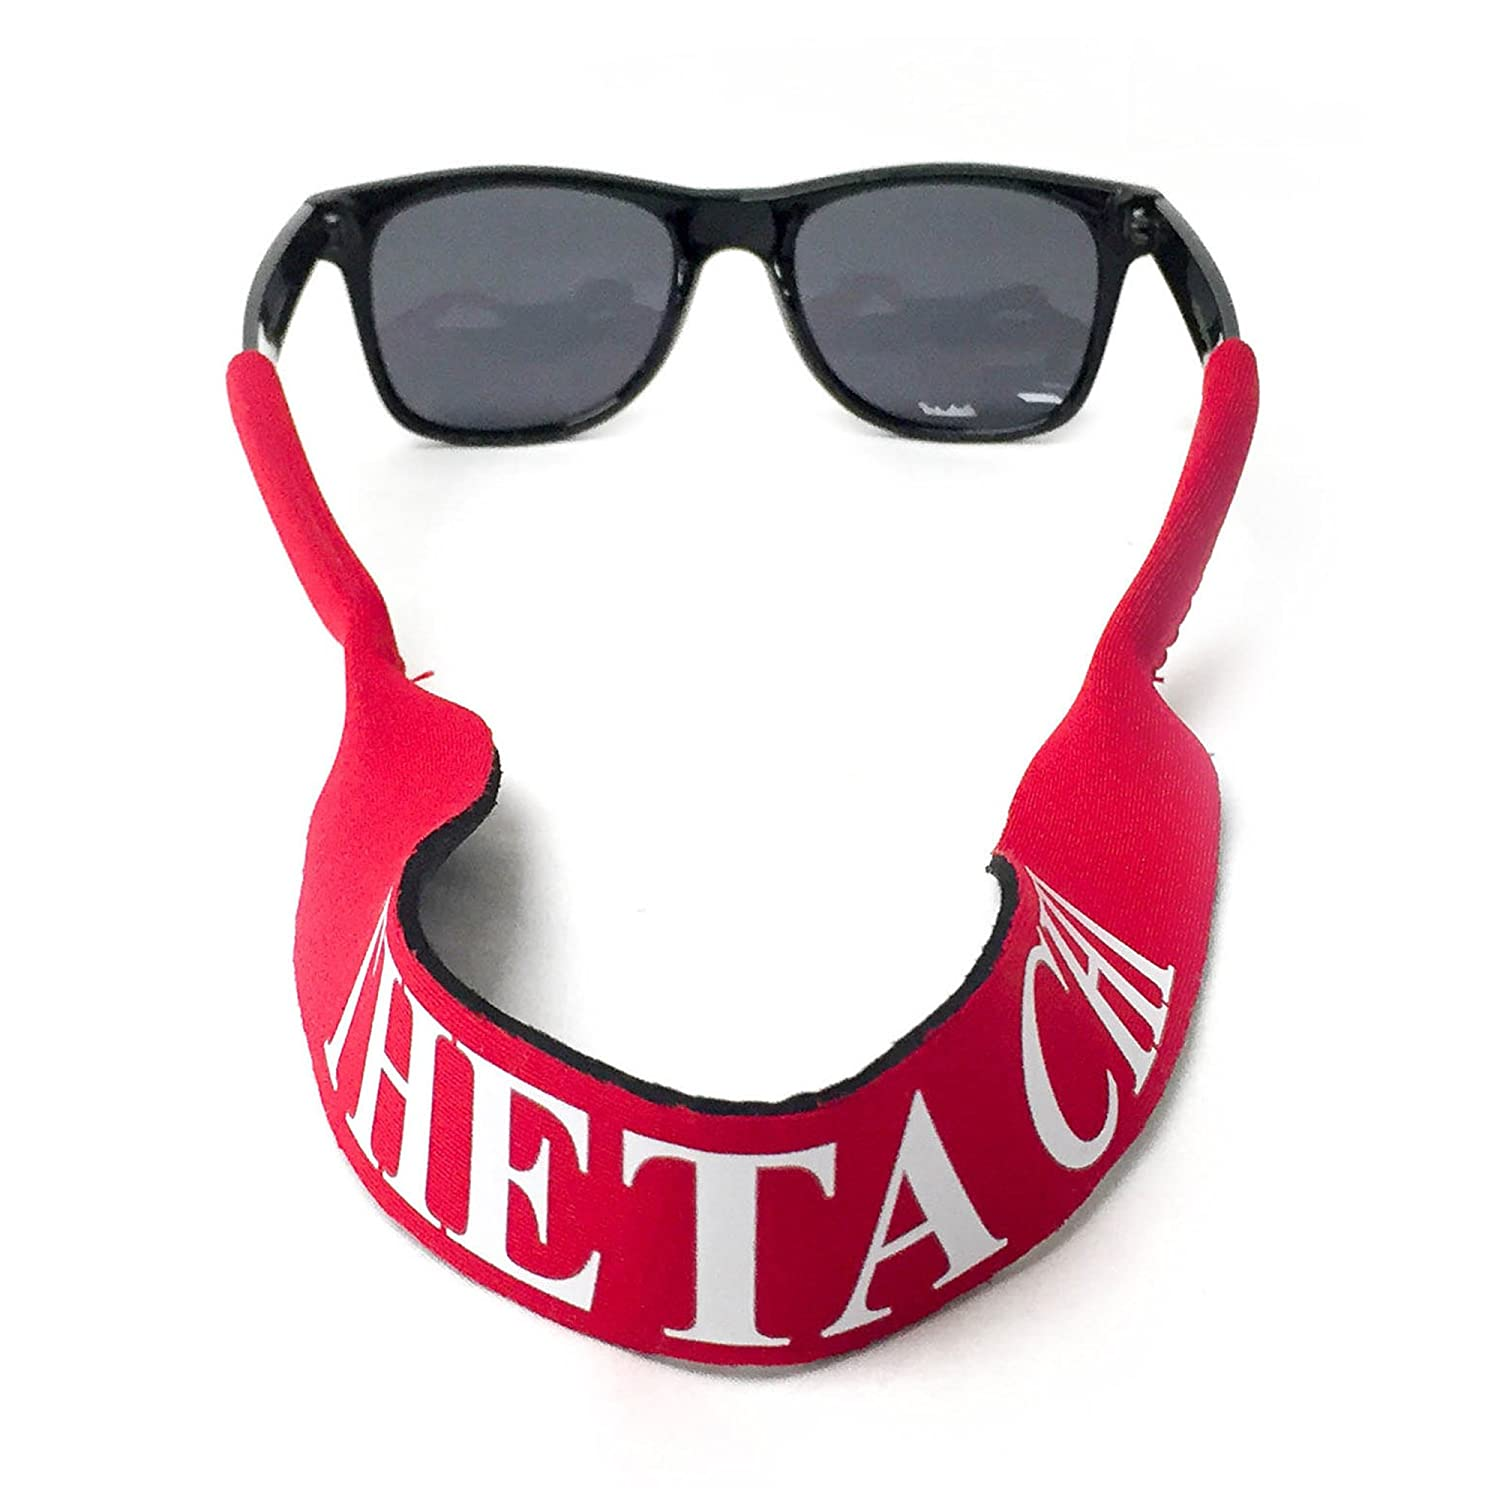 Theta Chi Sunglasses Holders Greek Beach Sunny Day T Chi at ...